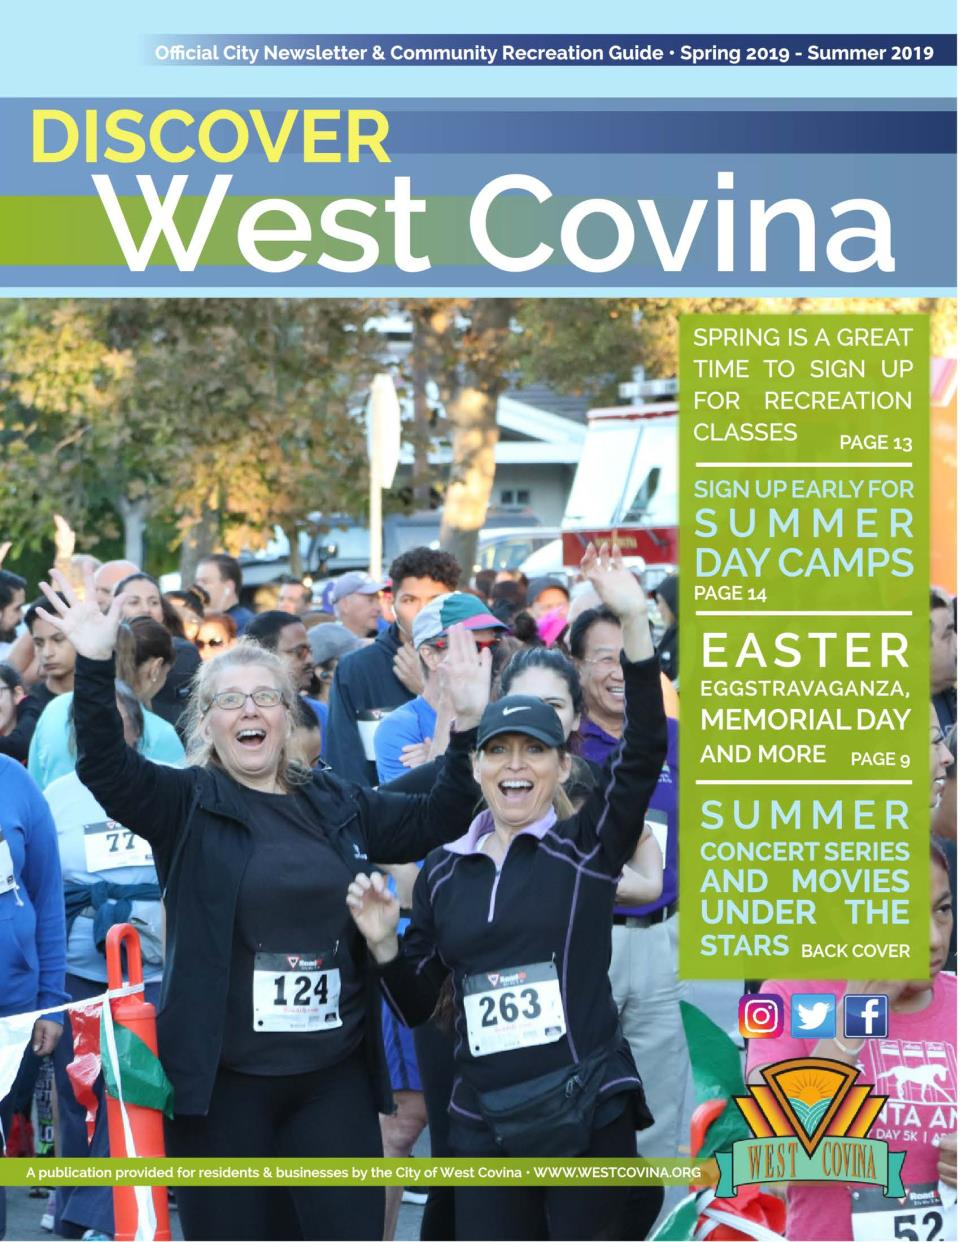 Discover City News and Recreation Guide | City of West Covina